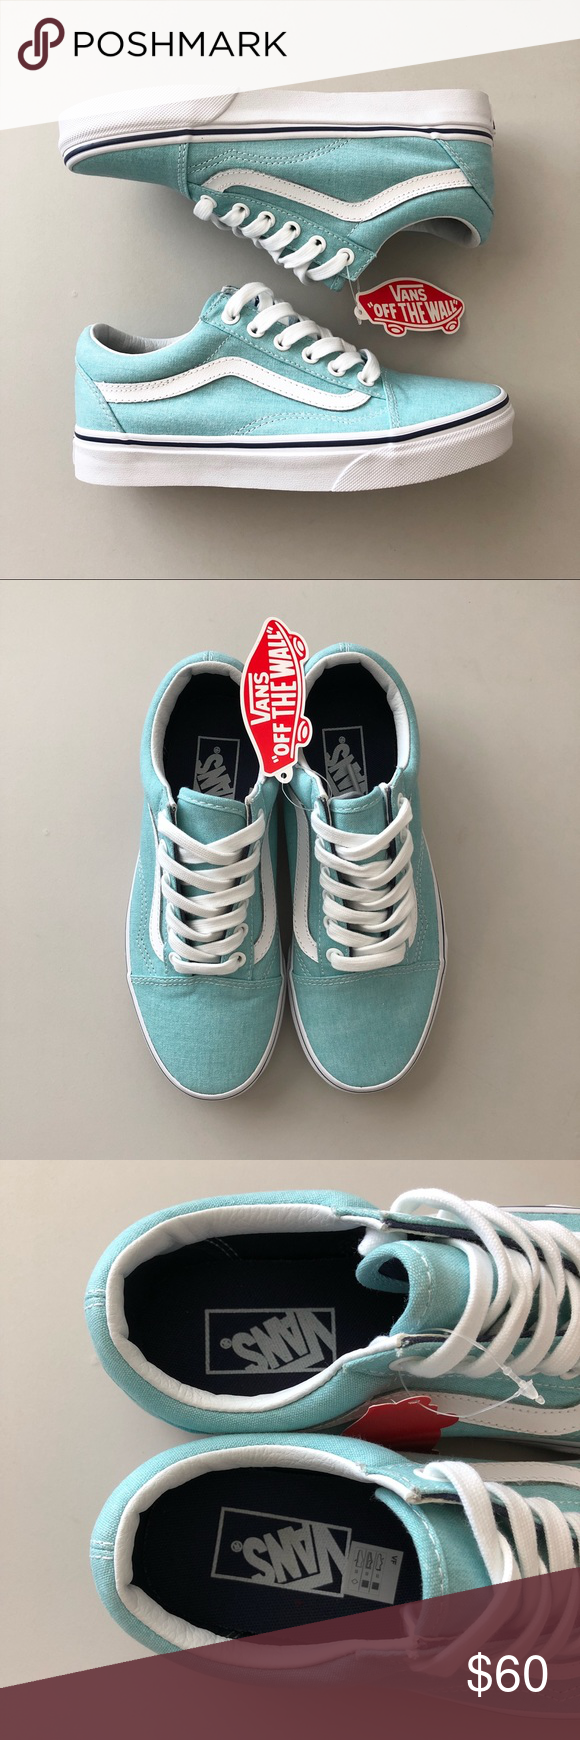 994c2e0dc8 Vans Old Skool Canvas Sneaker New with box